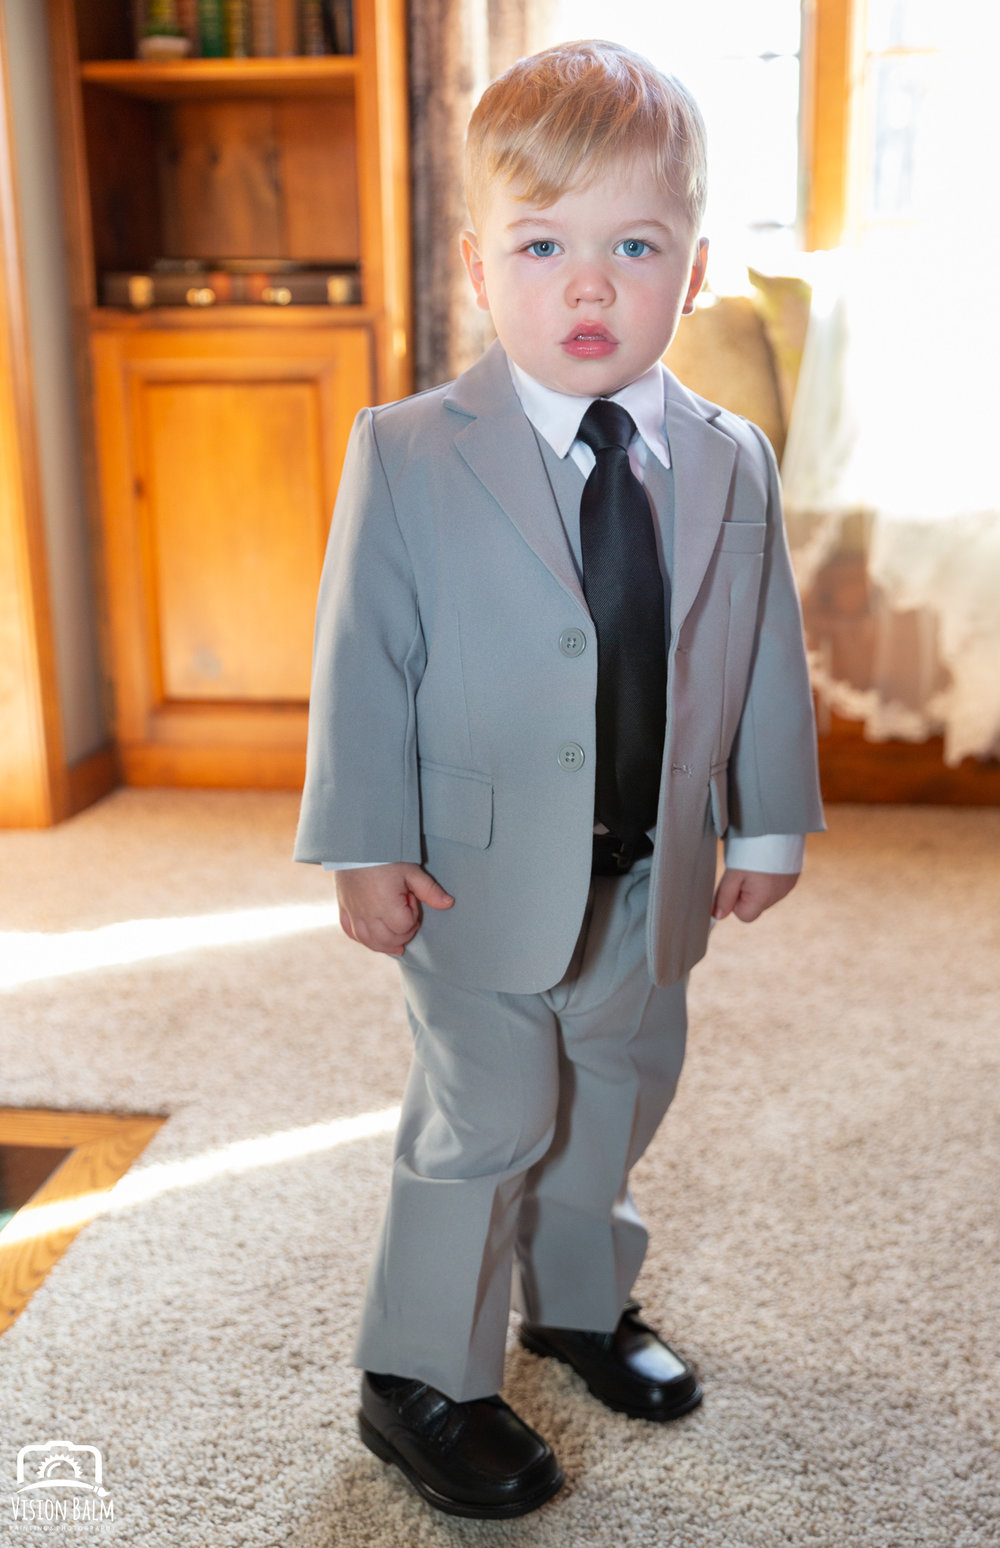 Portrait of young boy dressed in a gray suit for his mother's wedding in Zuka's Hilltop Barn by Vision Balm in Charleston, SC.